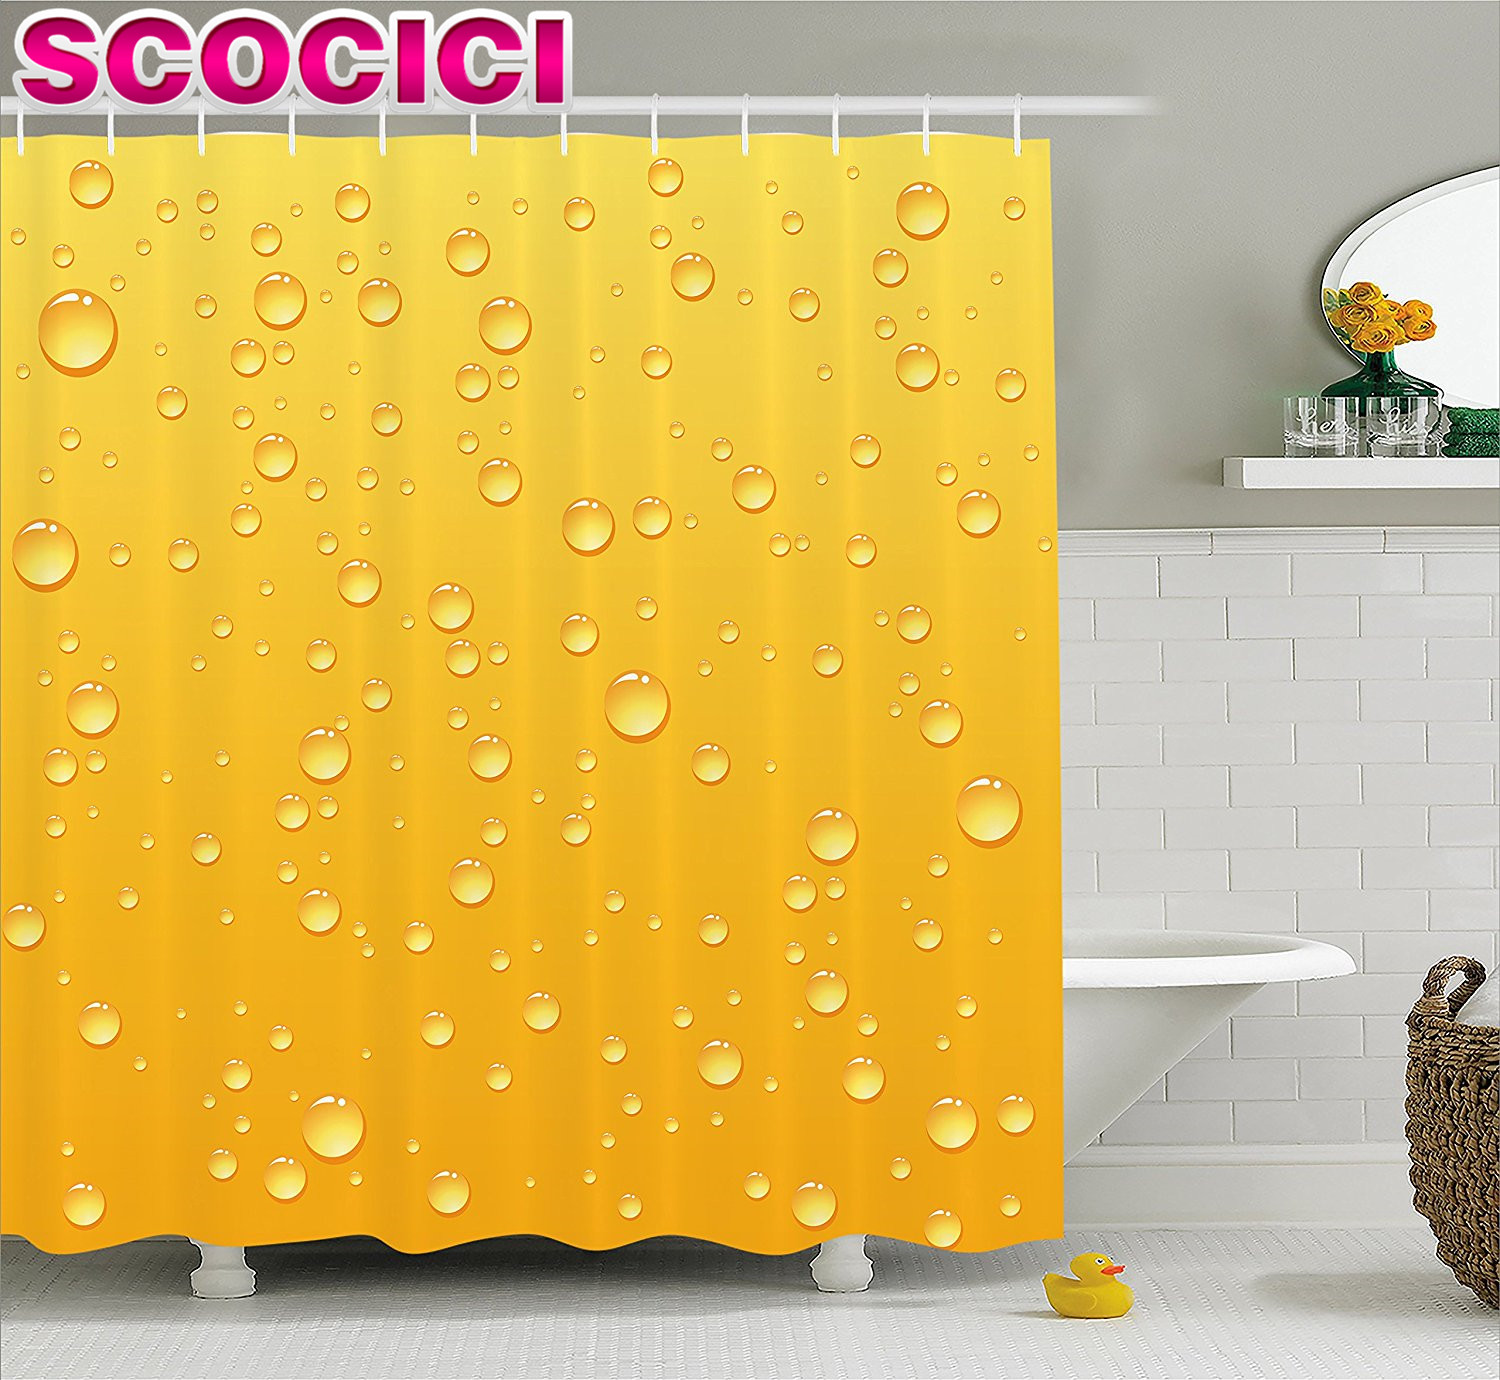 graphic shower curtain  mobroicom - aliexpresscom  buy yellow decor shower curtain yellow ombre